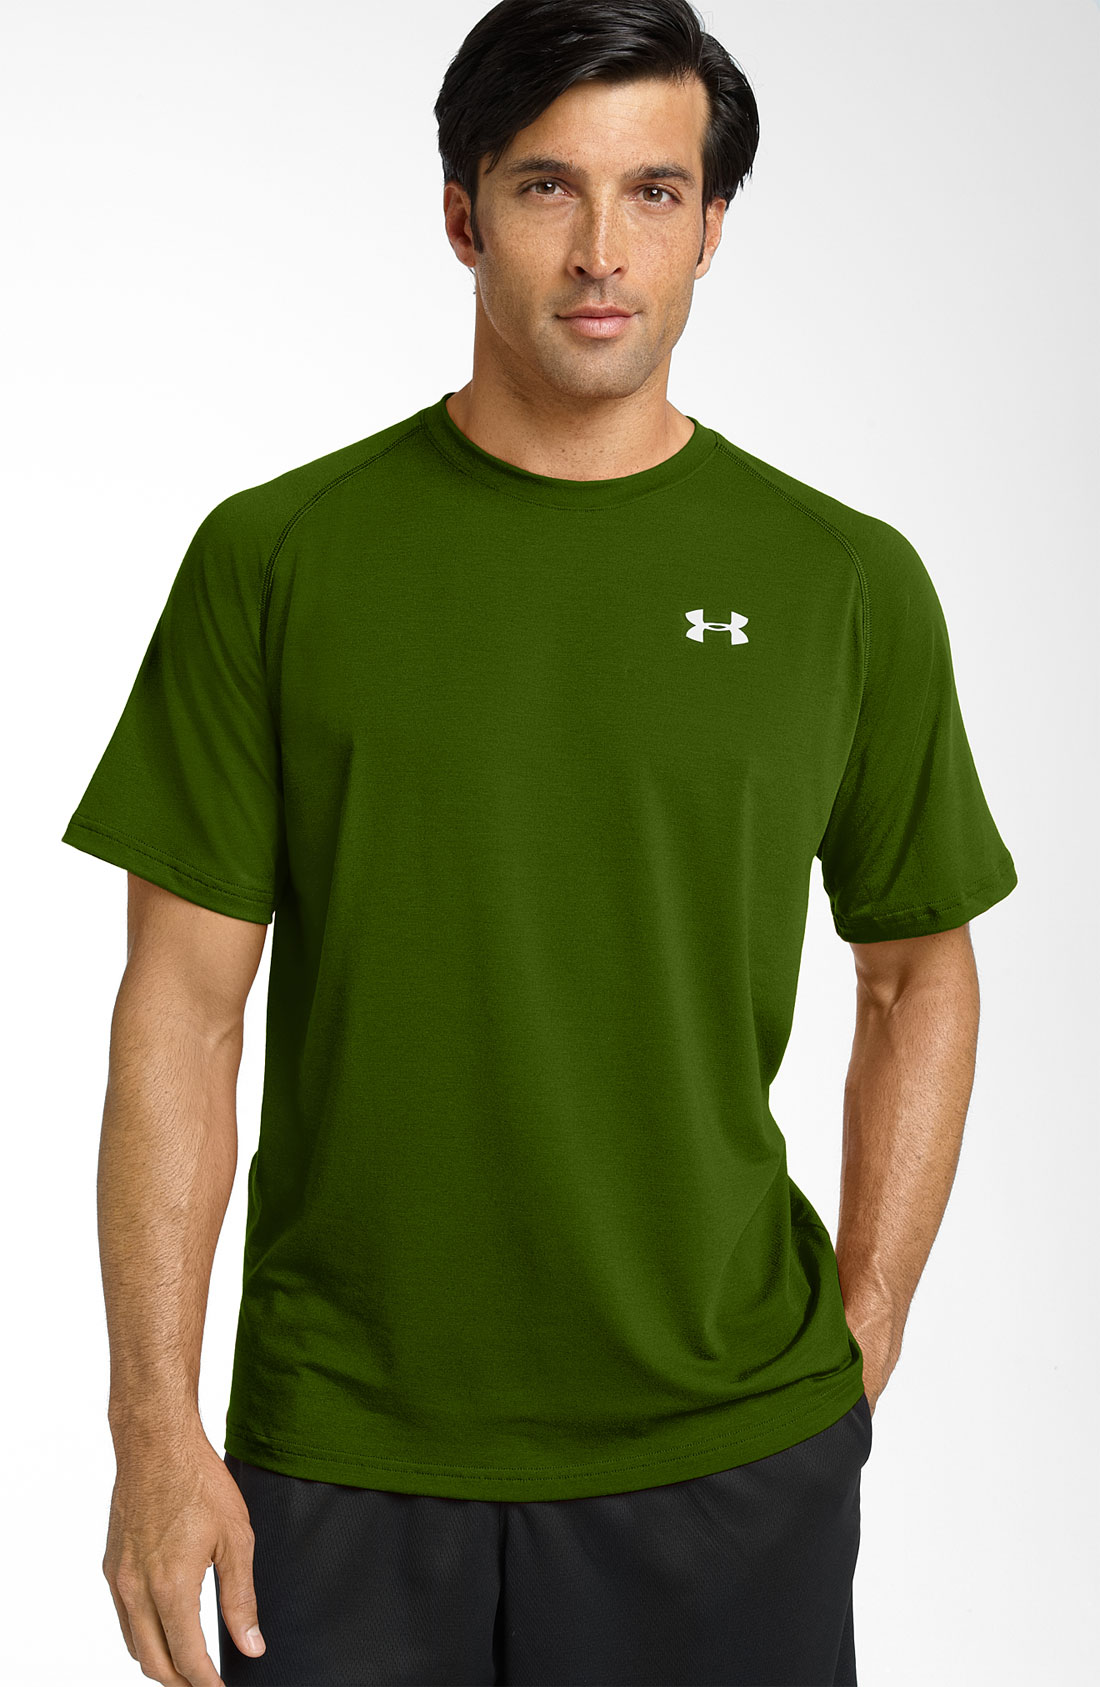 Under armour ua tech heatgear t shirt in green for men for Under armour heatgear white shirt